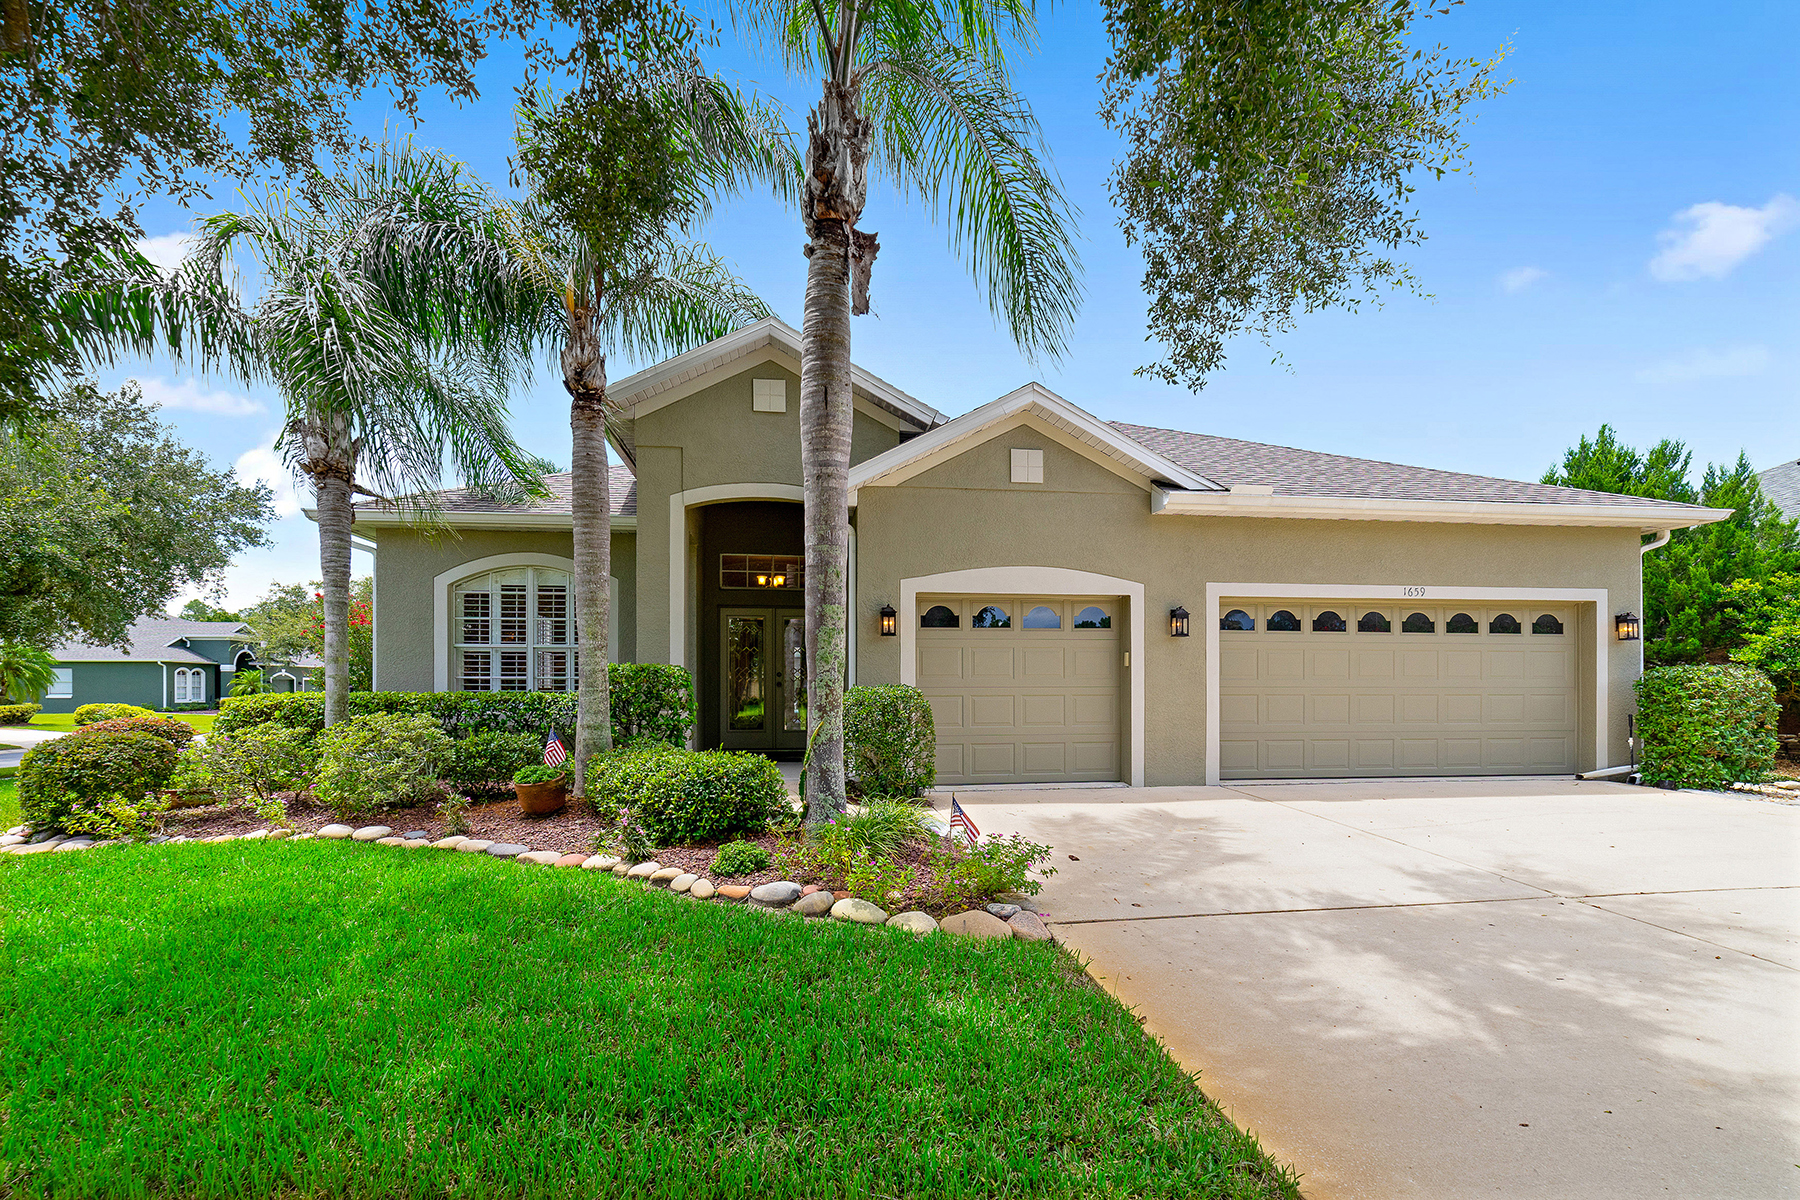 Single Family Homes for Sale at ORLANDO - LAKE MARY - HEATHROW 1659 Cherry Blossom Ter Lake Mary, Florida 32746 United States